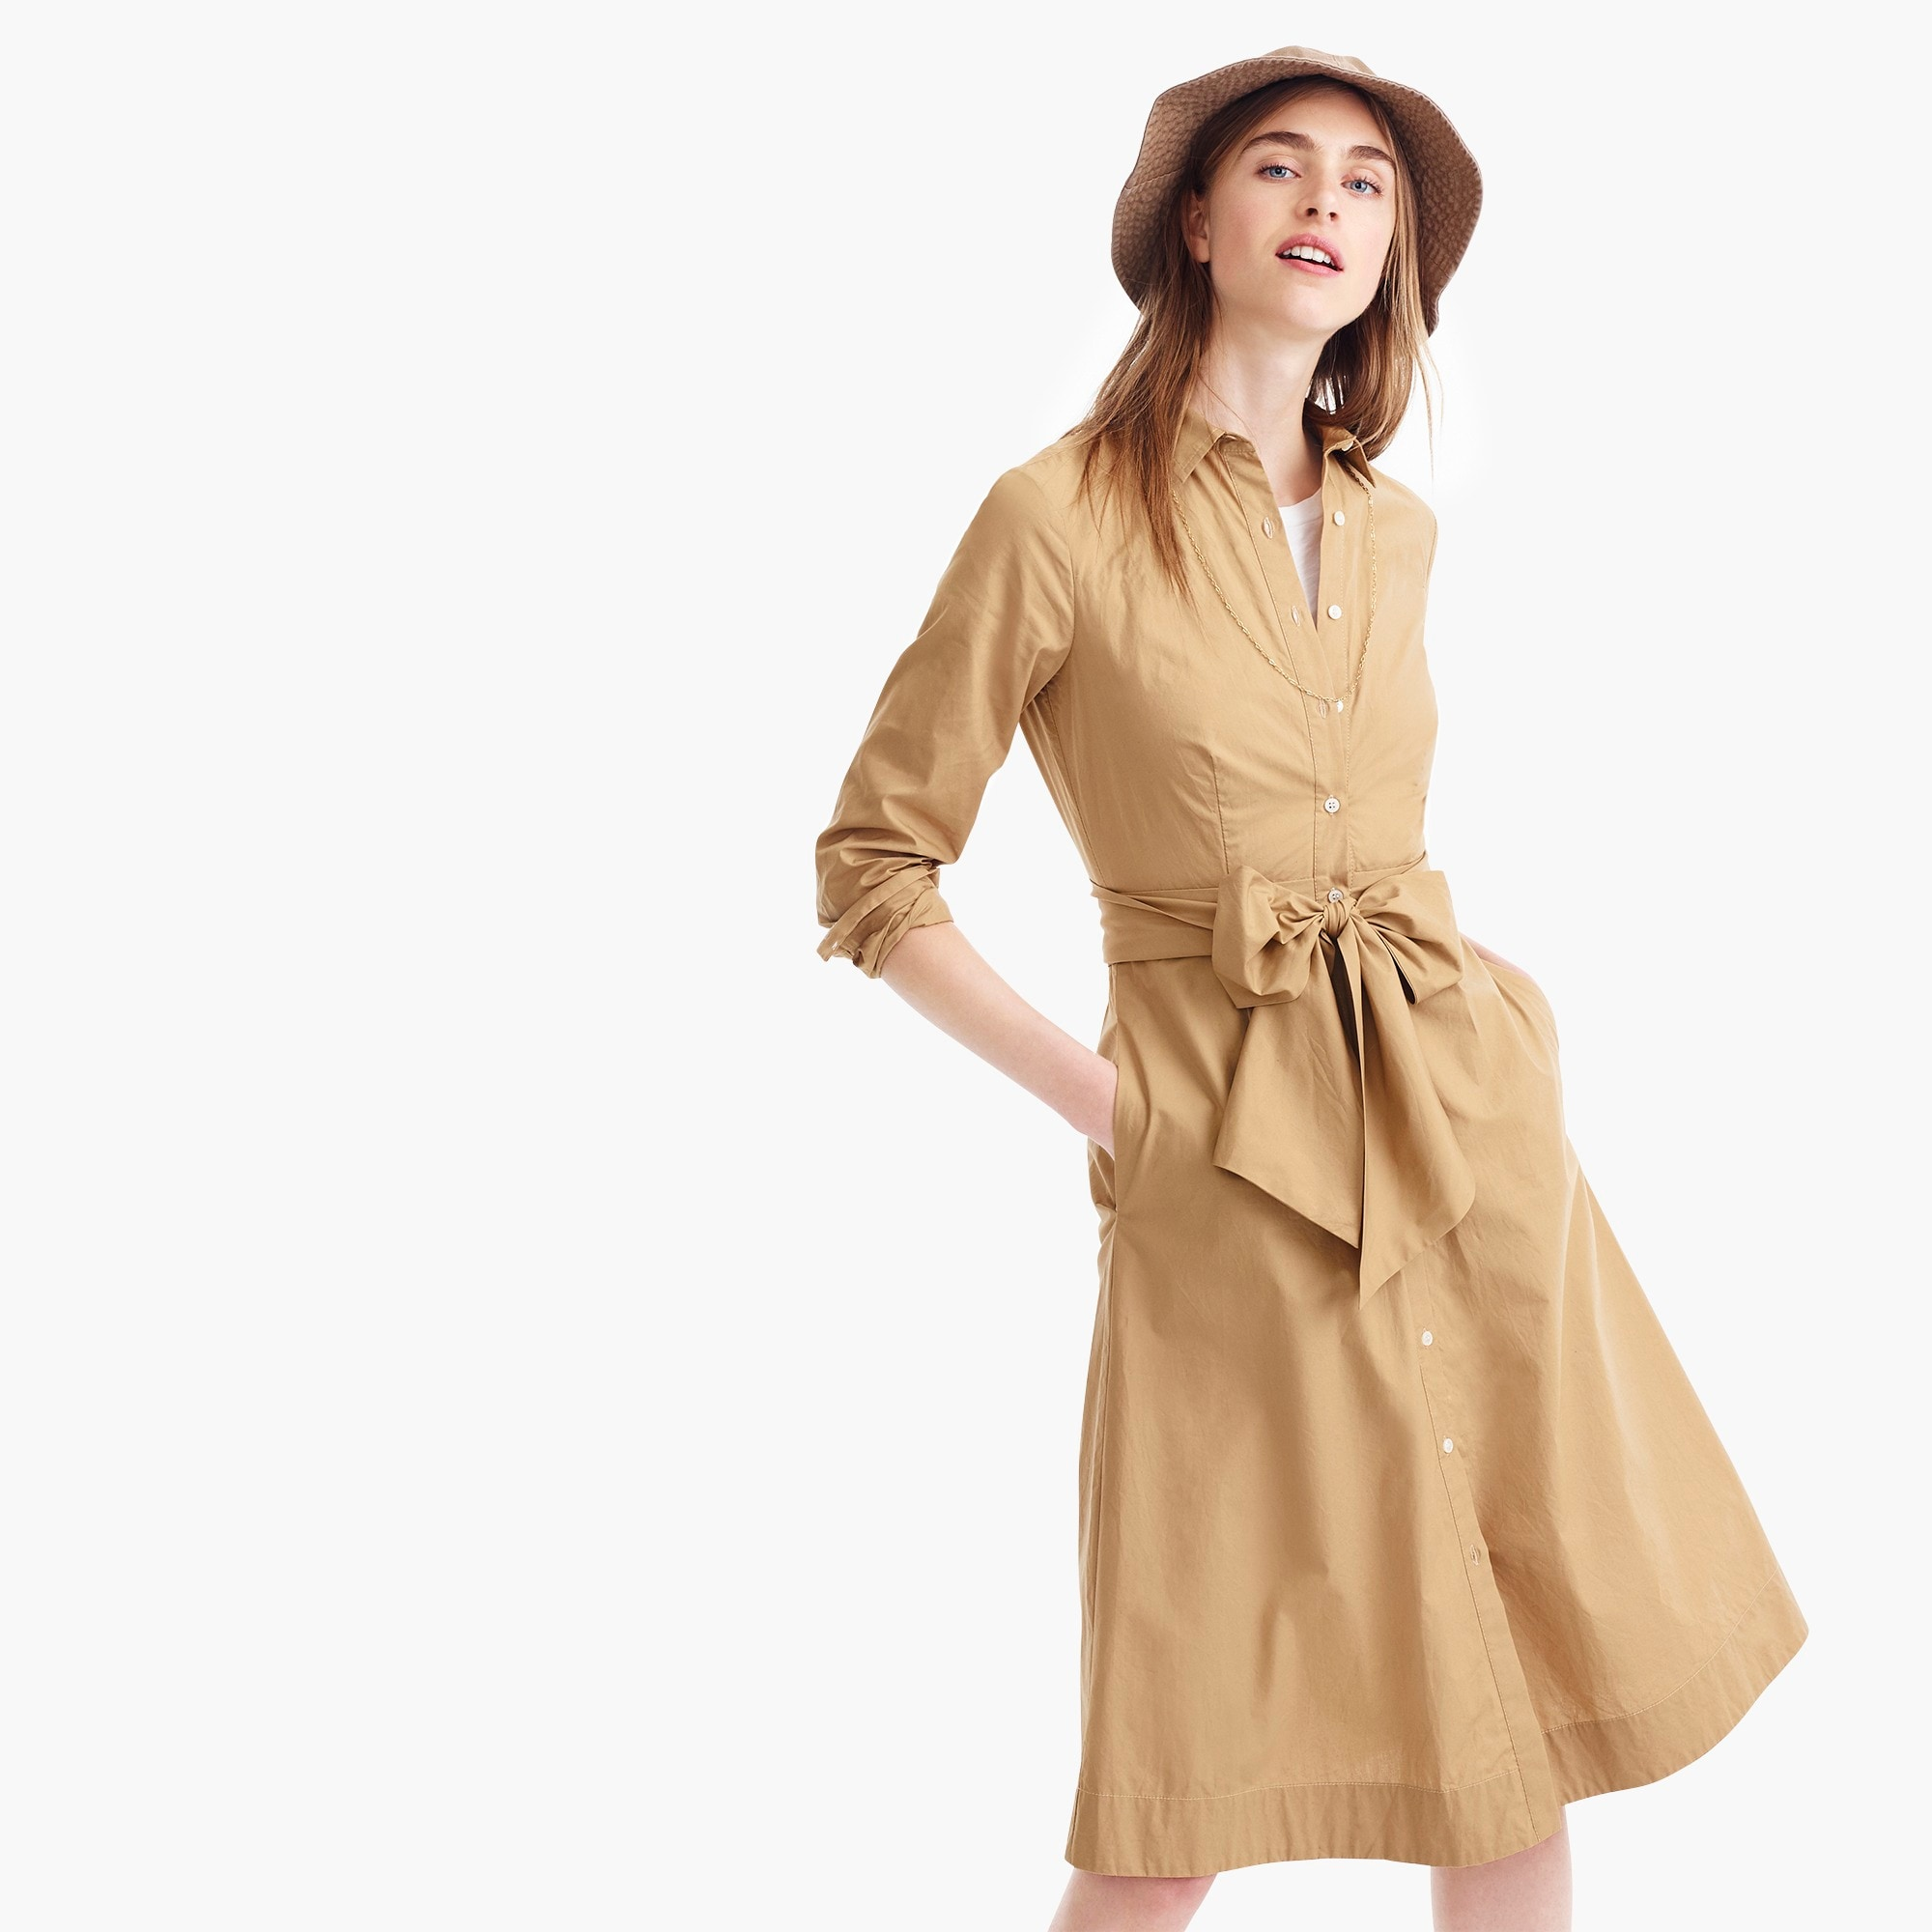 womens Tie-waist shirtdress in cotton poplin